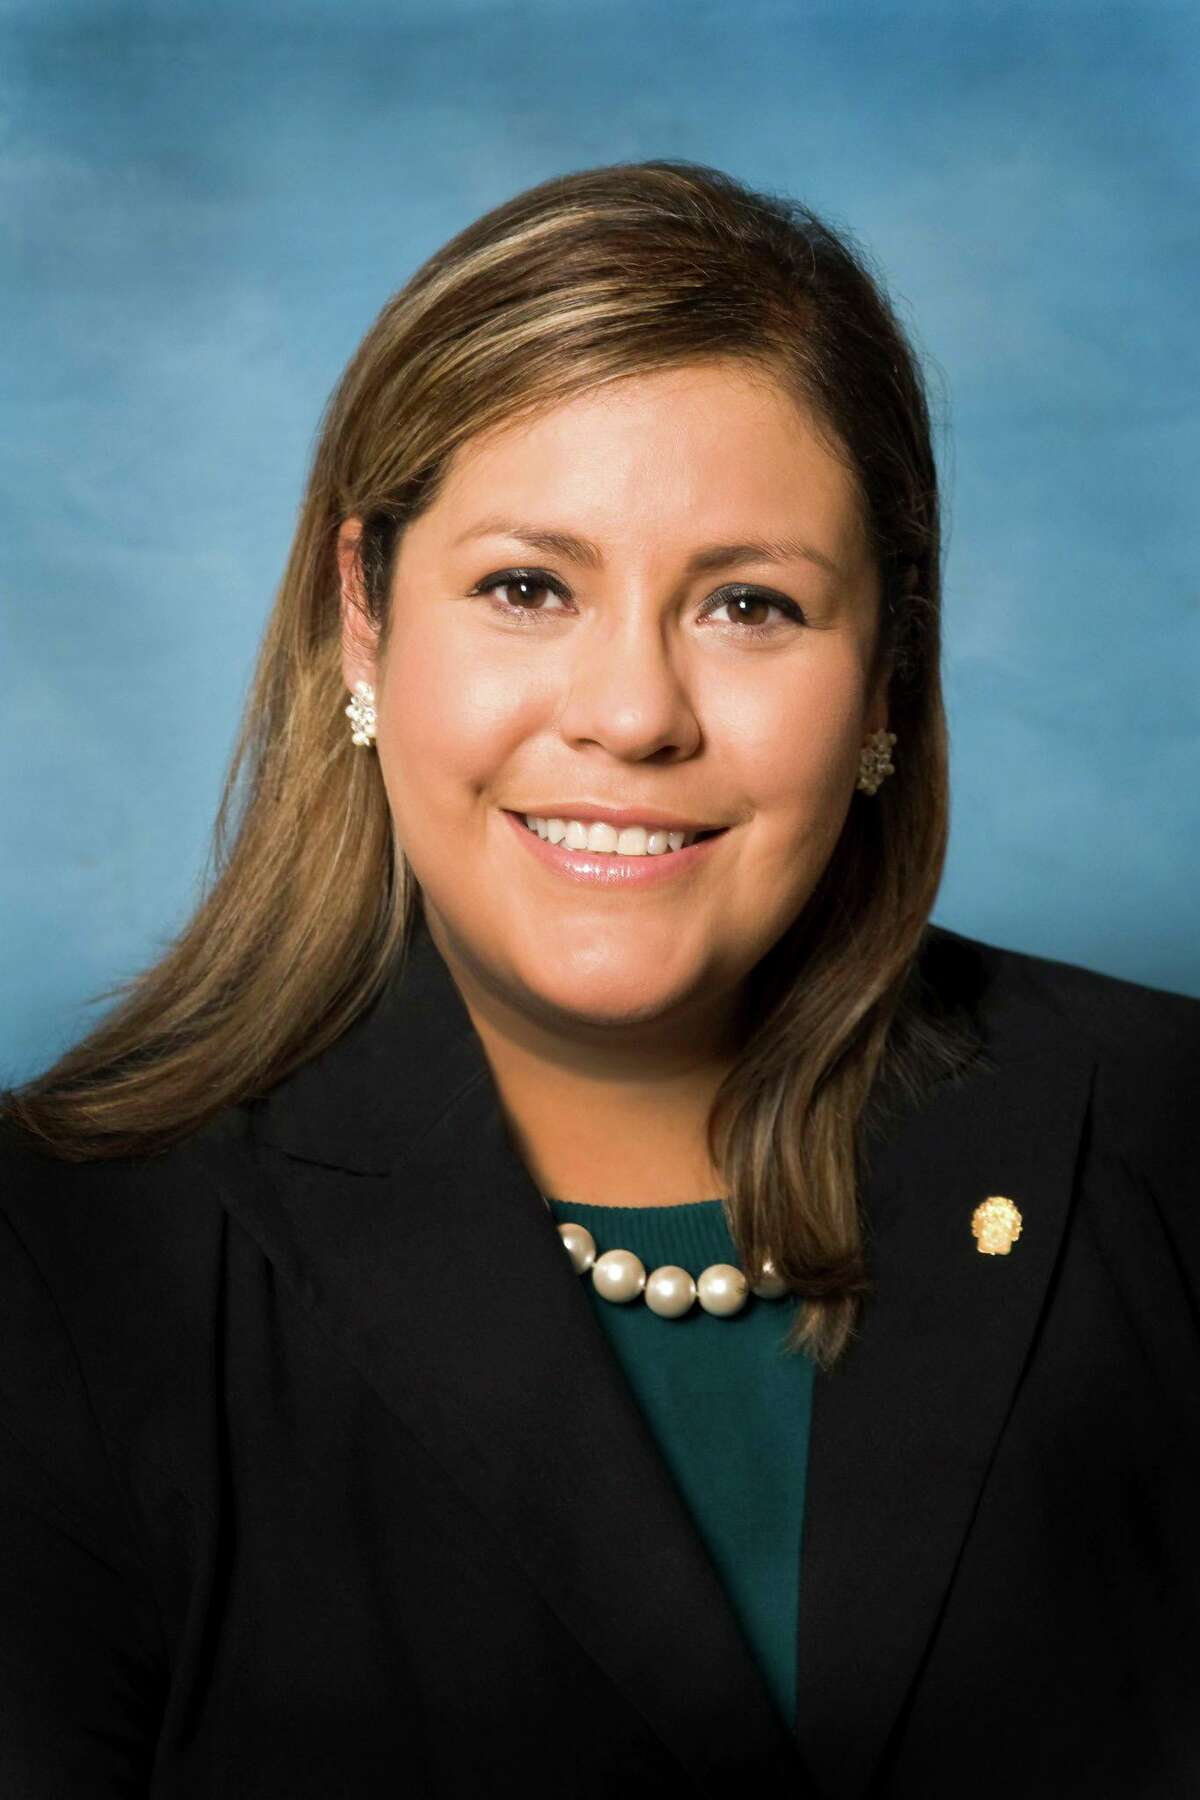 We recommend former City Councilwoman Jennifer Ramos for state representative in House District 119.